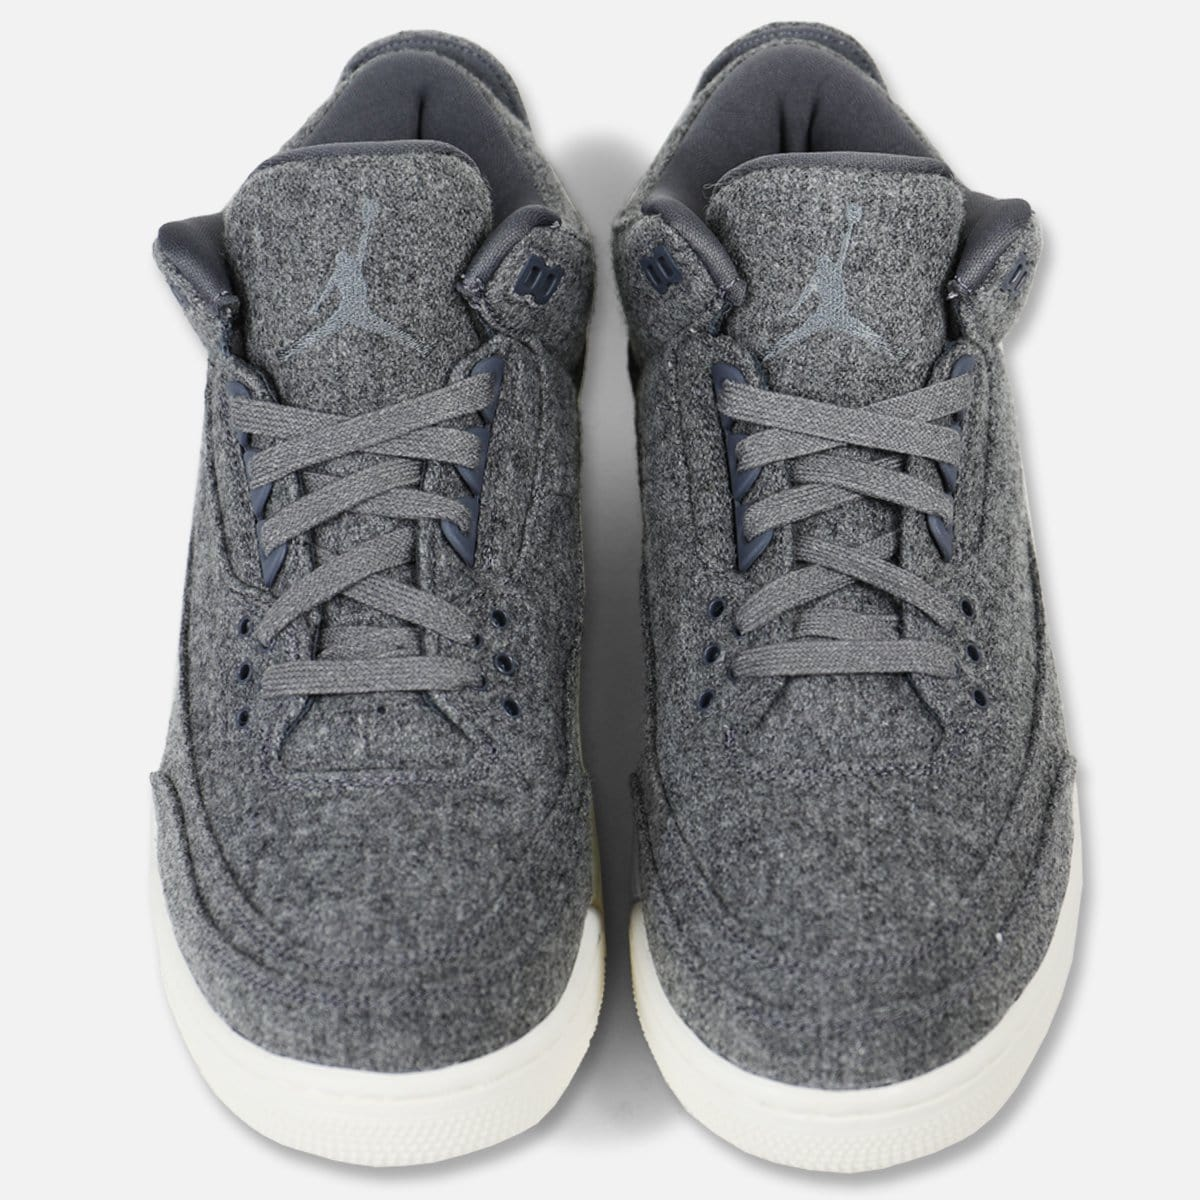 Jordan Air Jordan 3 Retro 'Wool' (Dark Grey/Dark Grey-Sail)